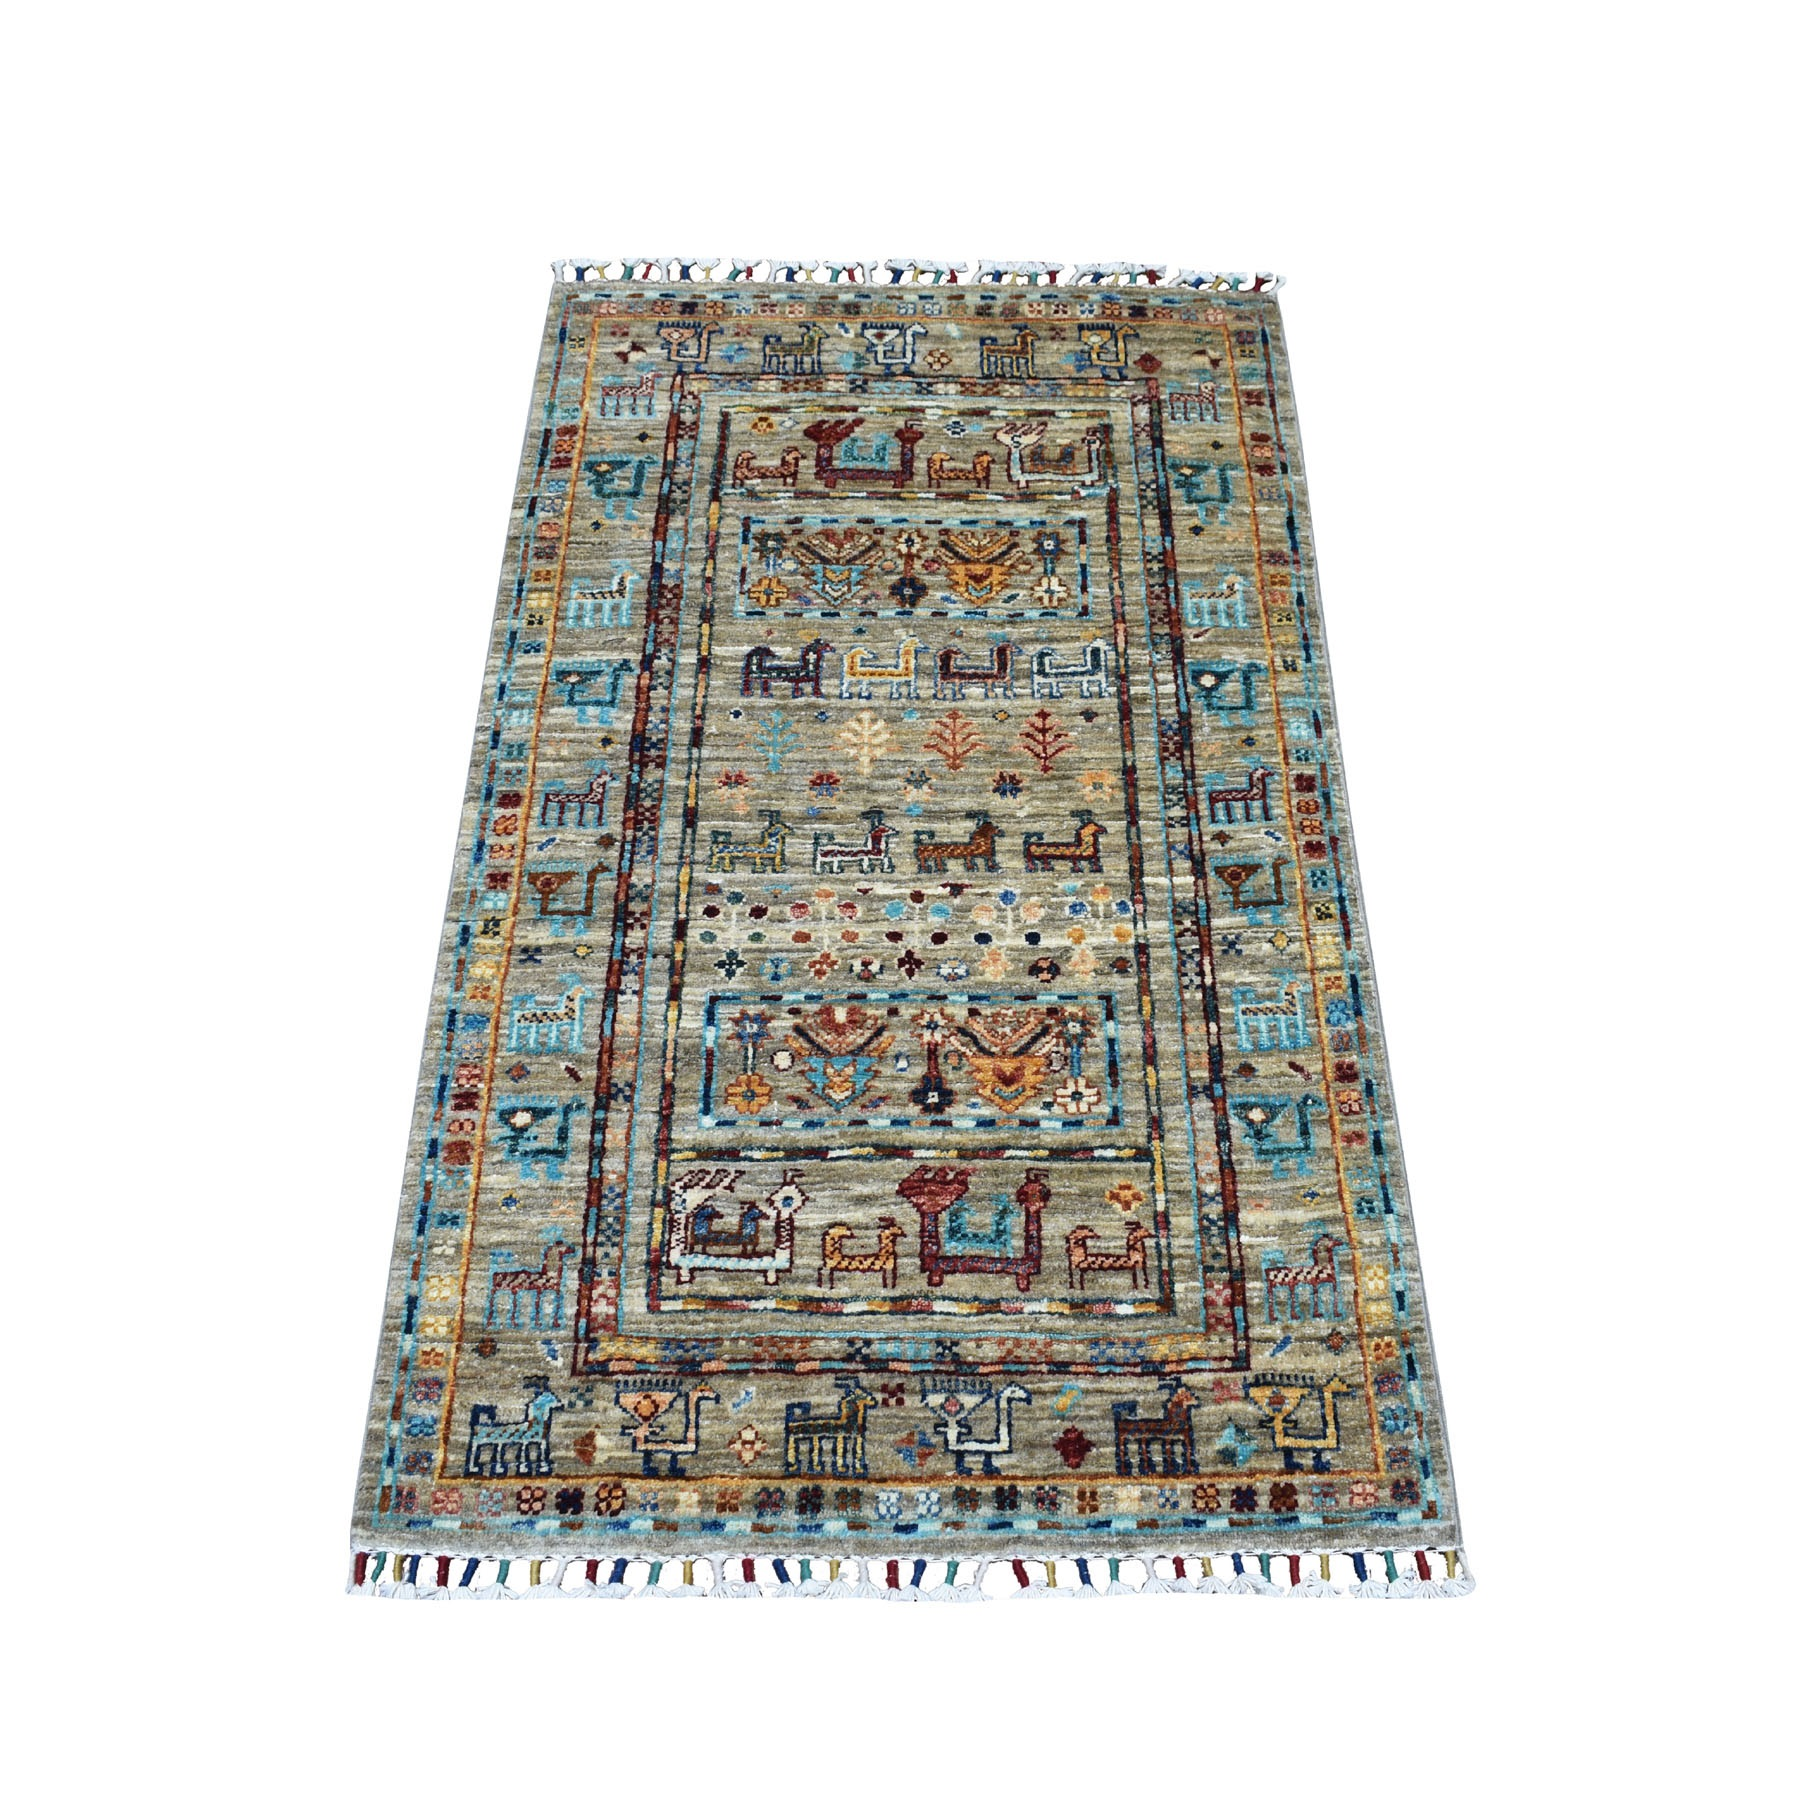 "2'6""x4' Khorjin Design Colorful Super Kazak Pure Wool Hand Knotted Oriental Rug"